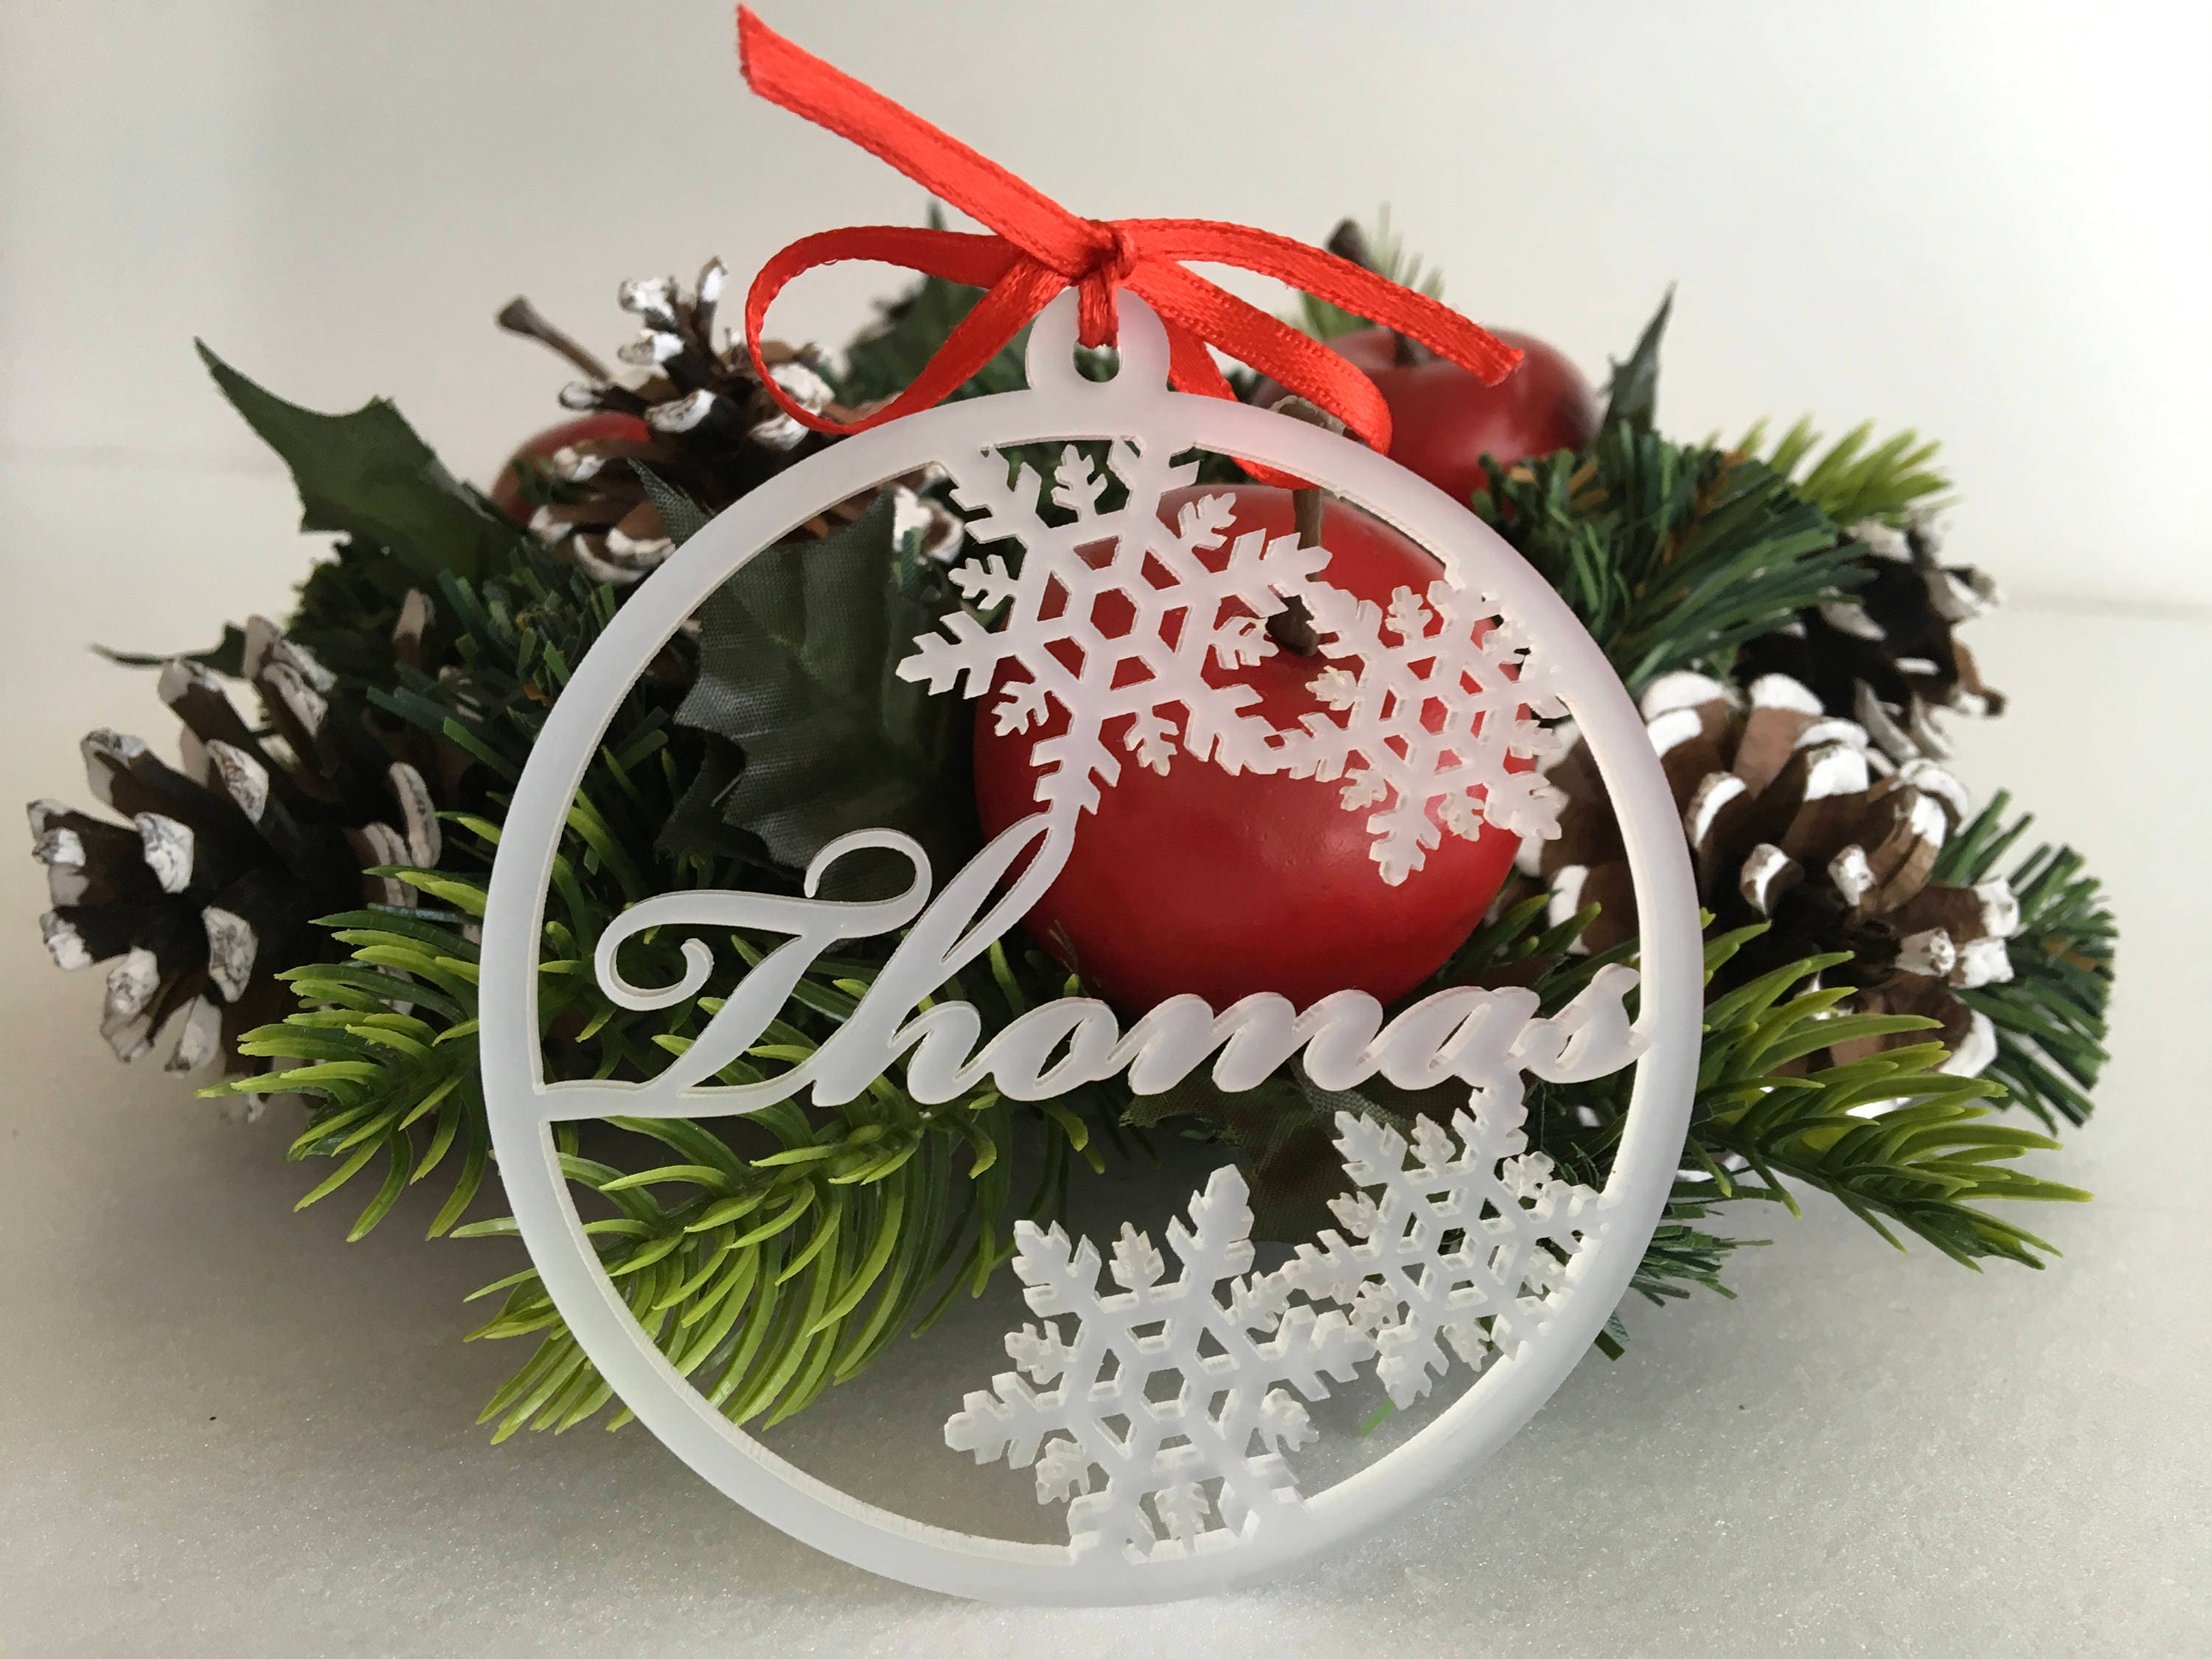 personalised christmas baubles frosted white acrylic bauble xmas tree decorations custom name ornaments snowflakes custom family gift idea - Christmas Tree Decorations Names